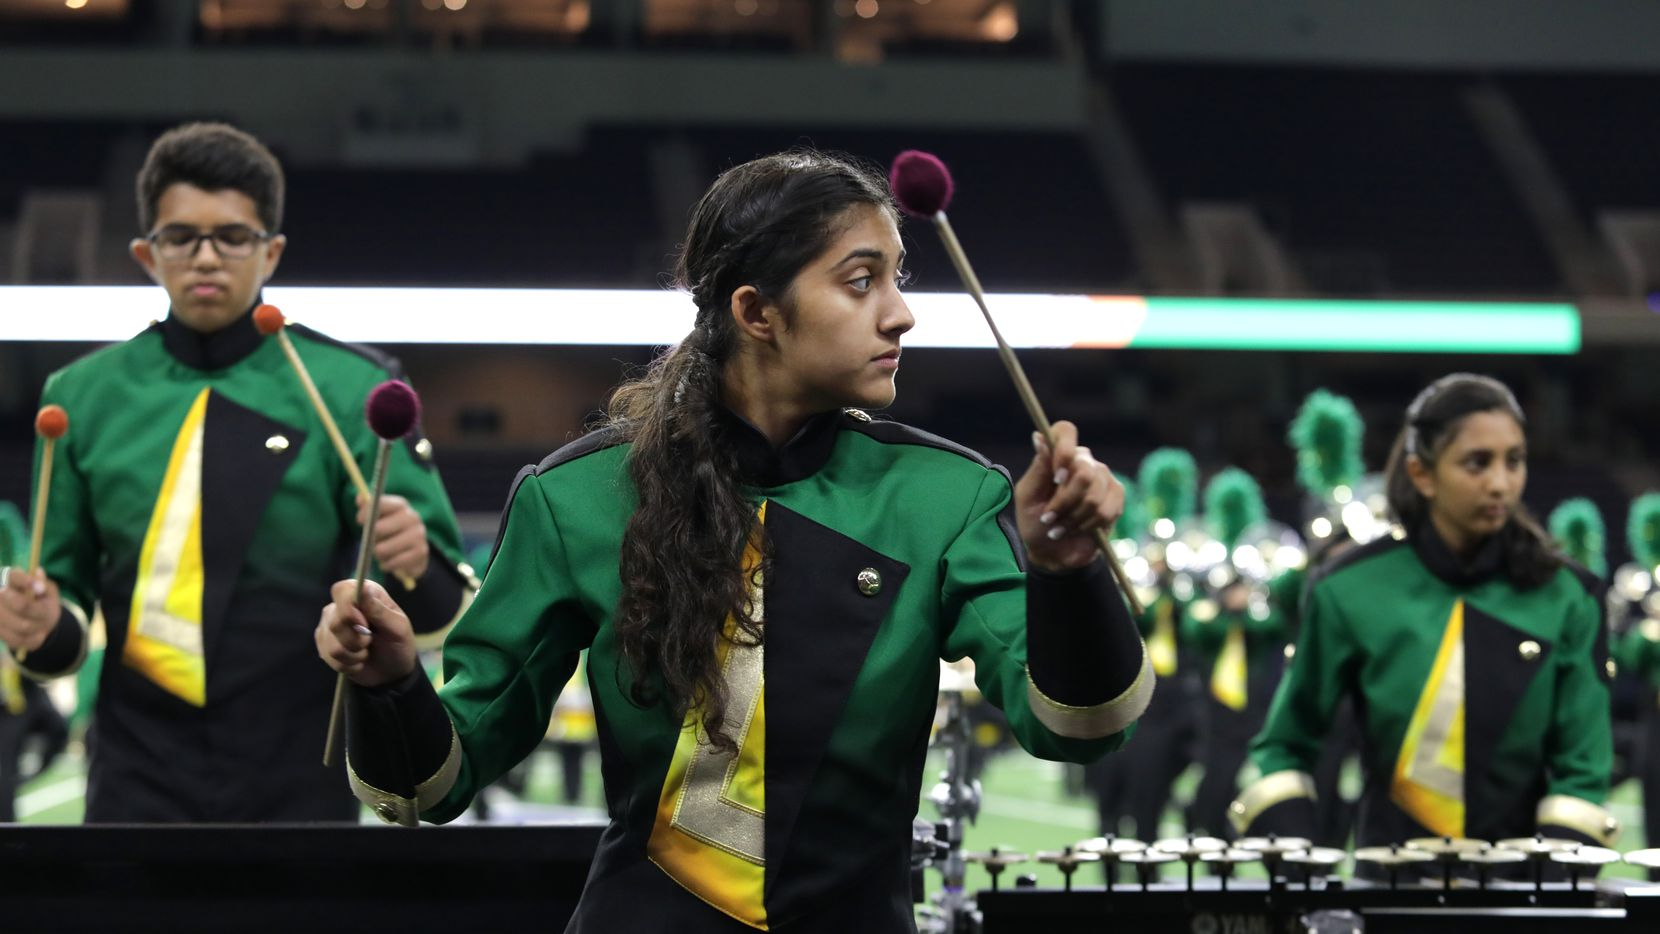 Lebanon Trail High School performs during the fourth annual Frisco ISD Marching Band Showcase in October.